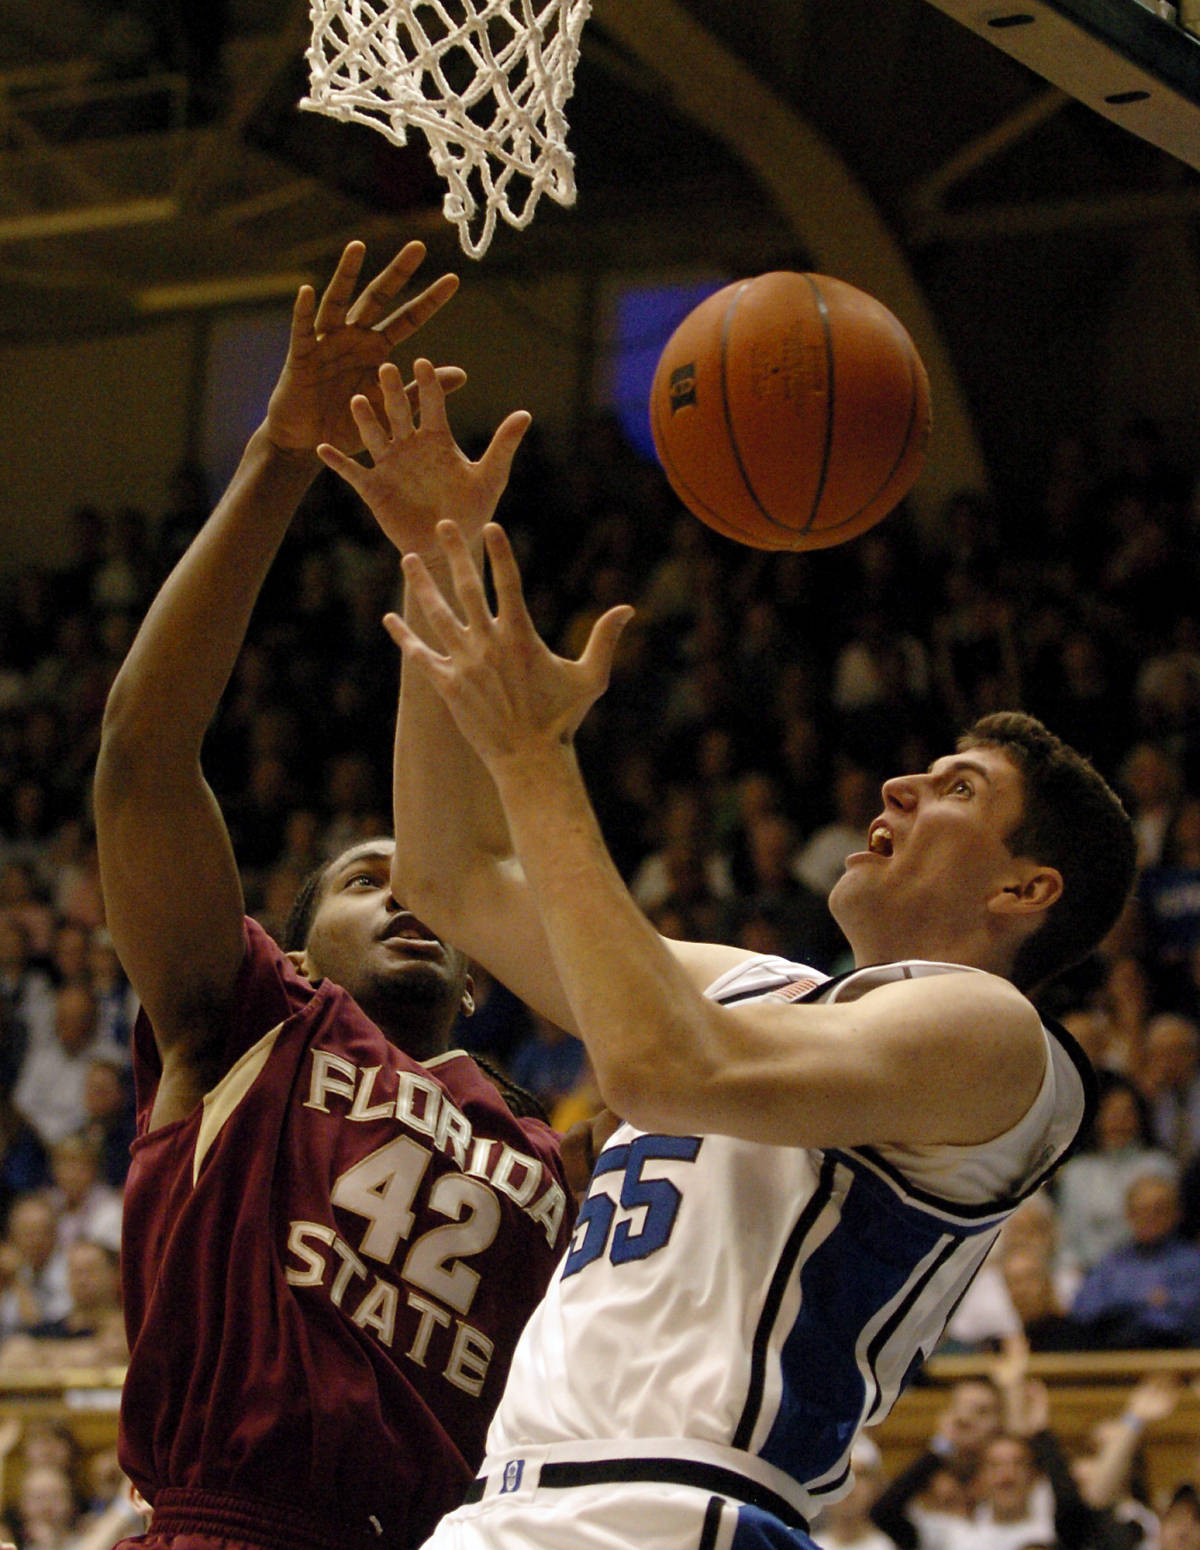 Duke's Brian Zoubek (55) battles for a loose ball under the basket with Florida State's Ryan Reid (42) in the first half of a basketball game in Durham, N.C., on Sunday, Feb. 4, 2007. (AP Photo/Sara D. Davis)